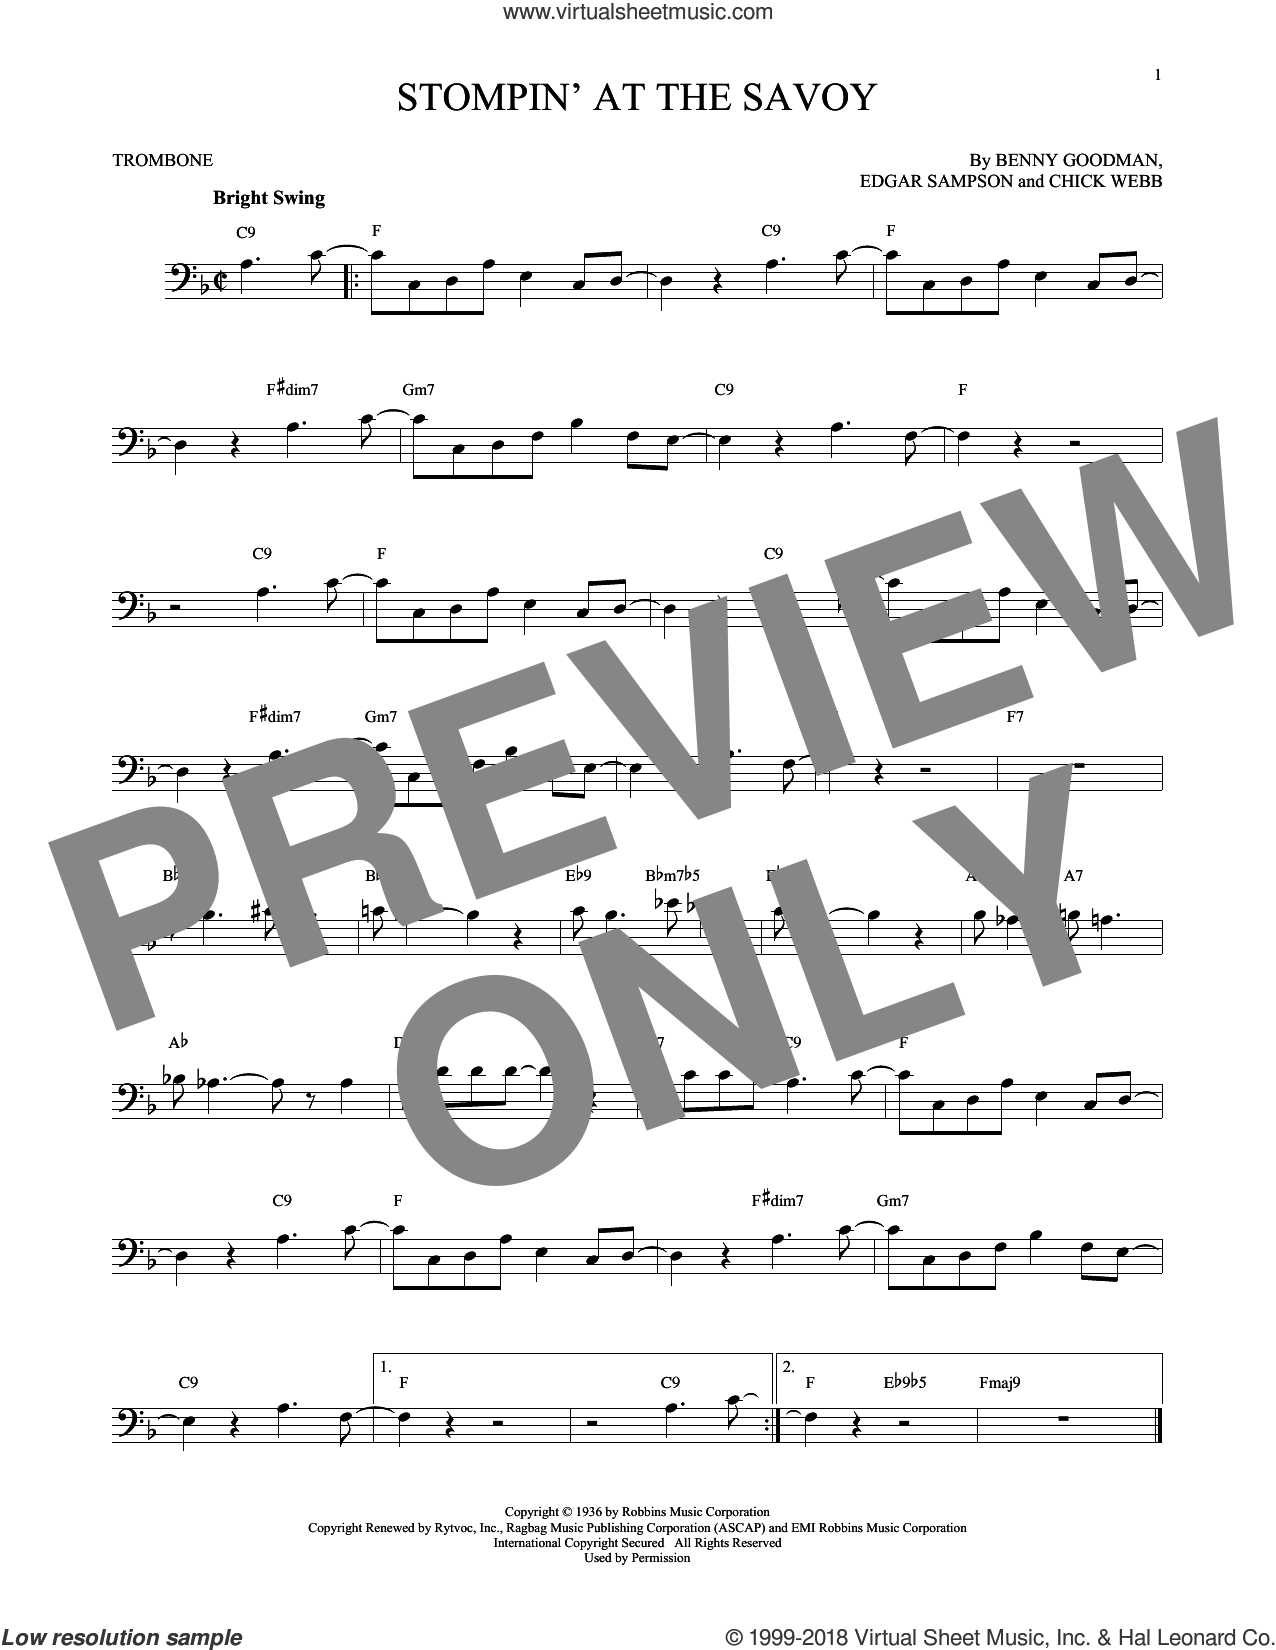 Stompin' At The Savoy sheet music for trombone solo by Benny Goodman, Andy Razaf, Chick Webb and Edgar Sampson, intermediate skill level